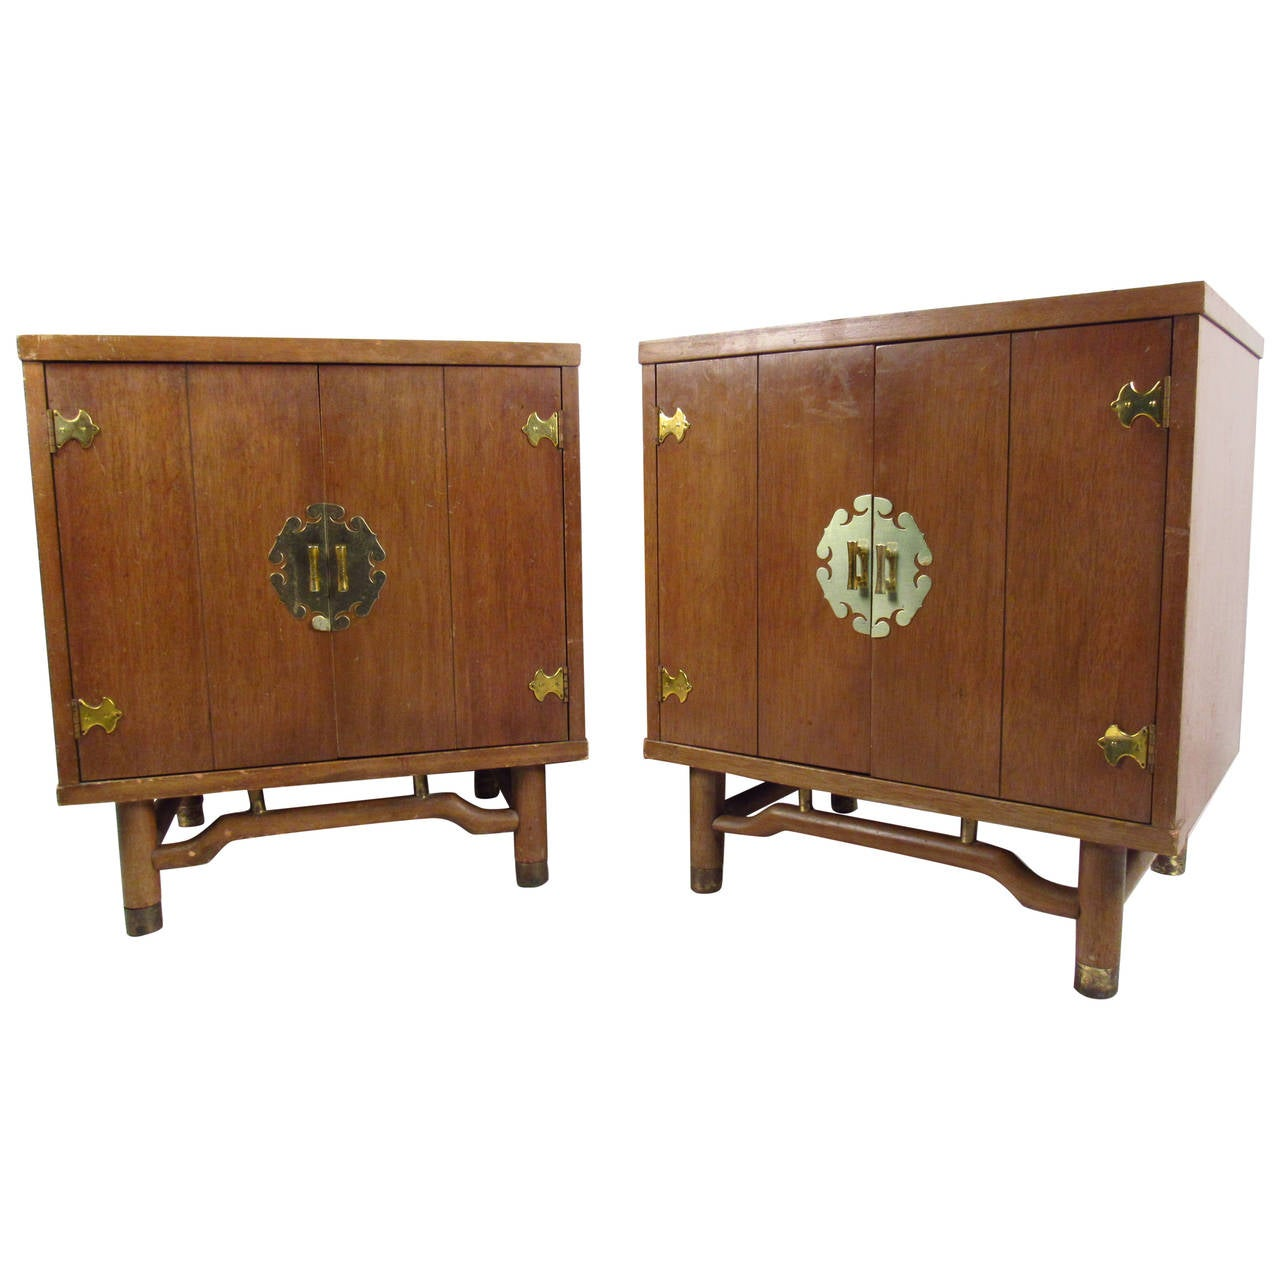 Pair of Mid Century Modern End Tables with Ornate Brass